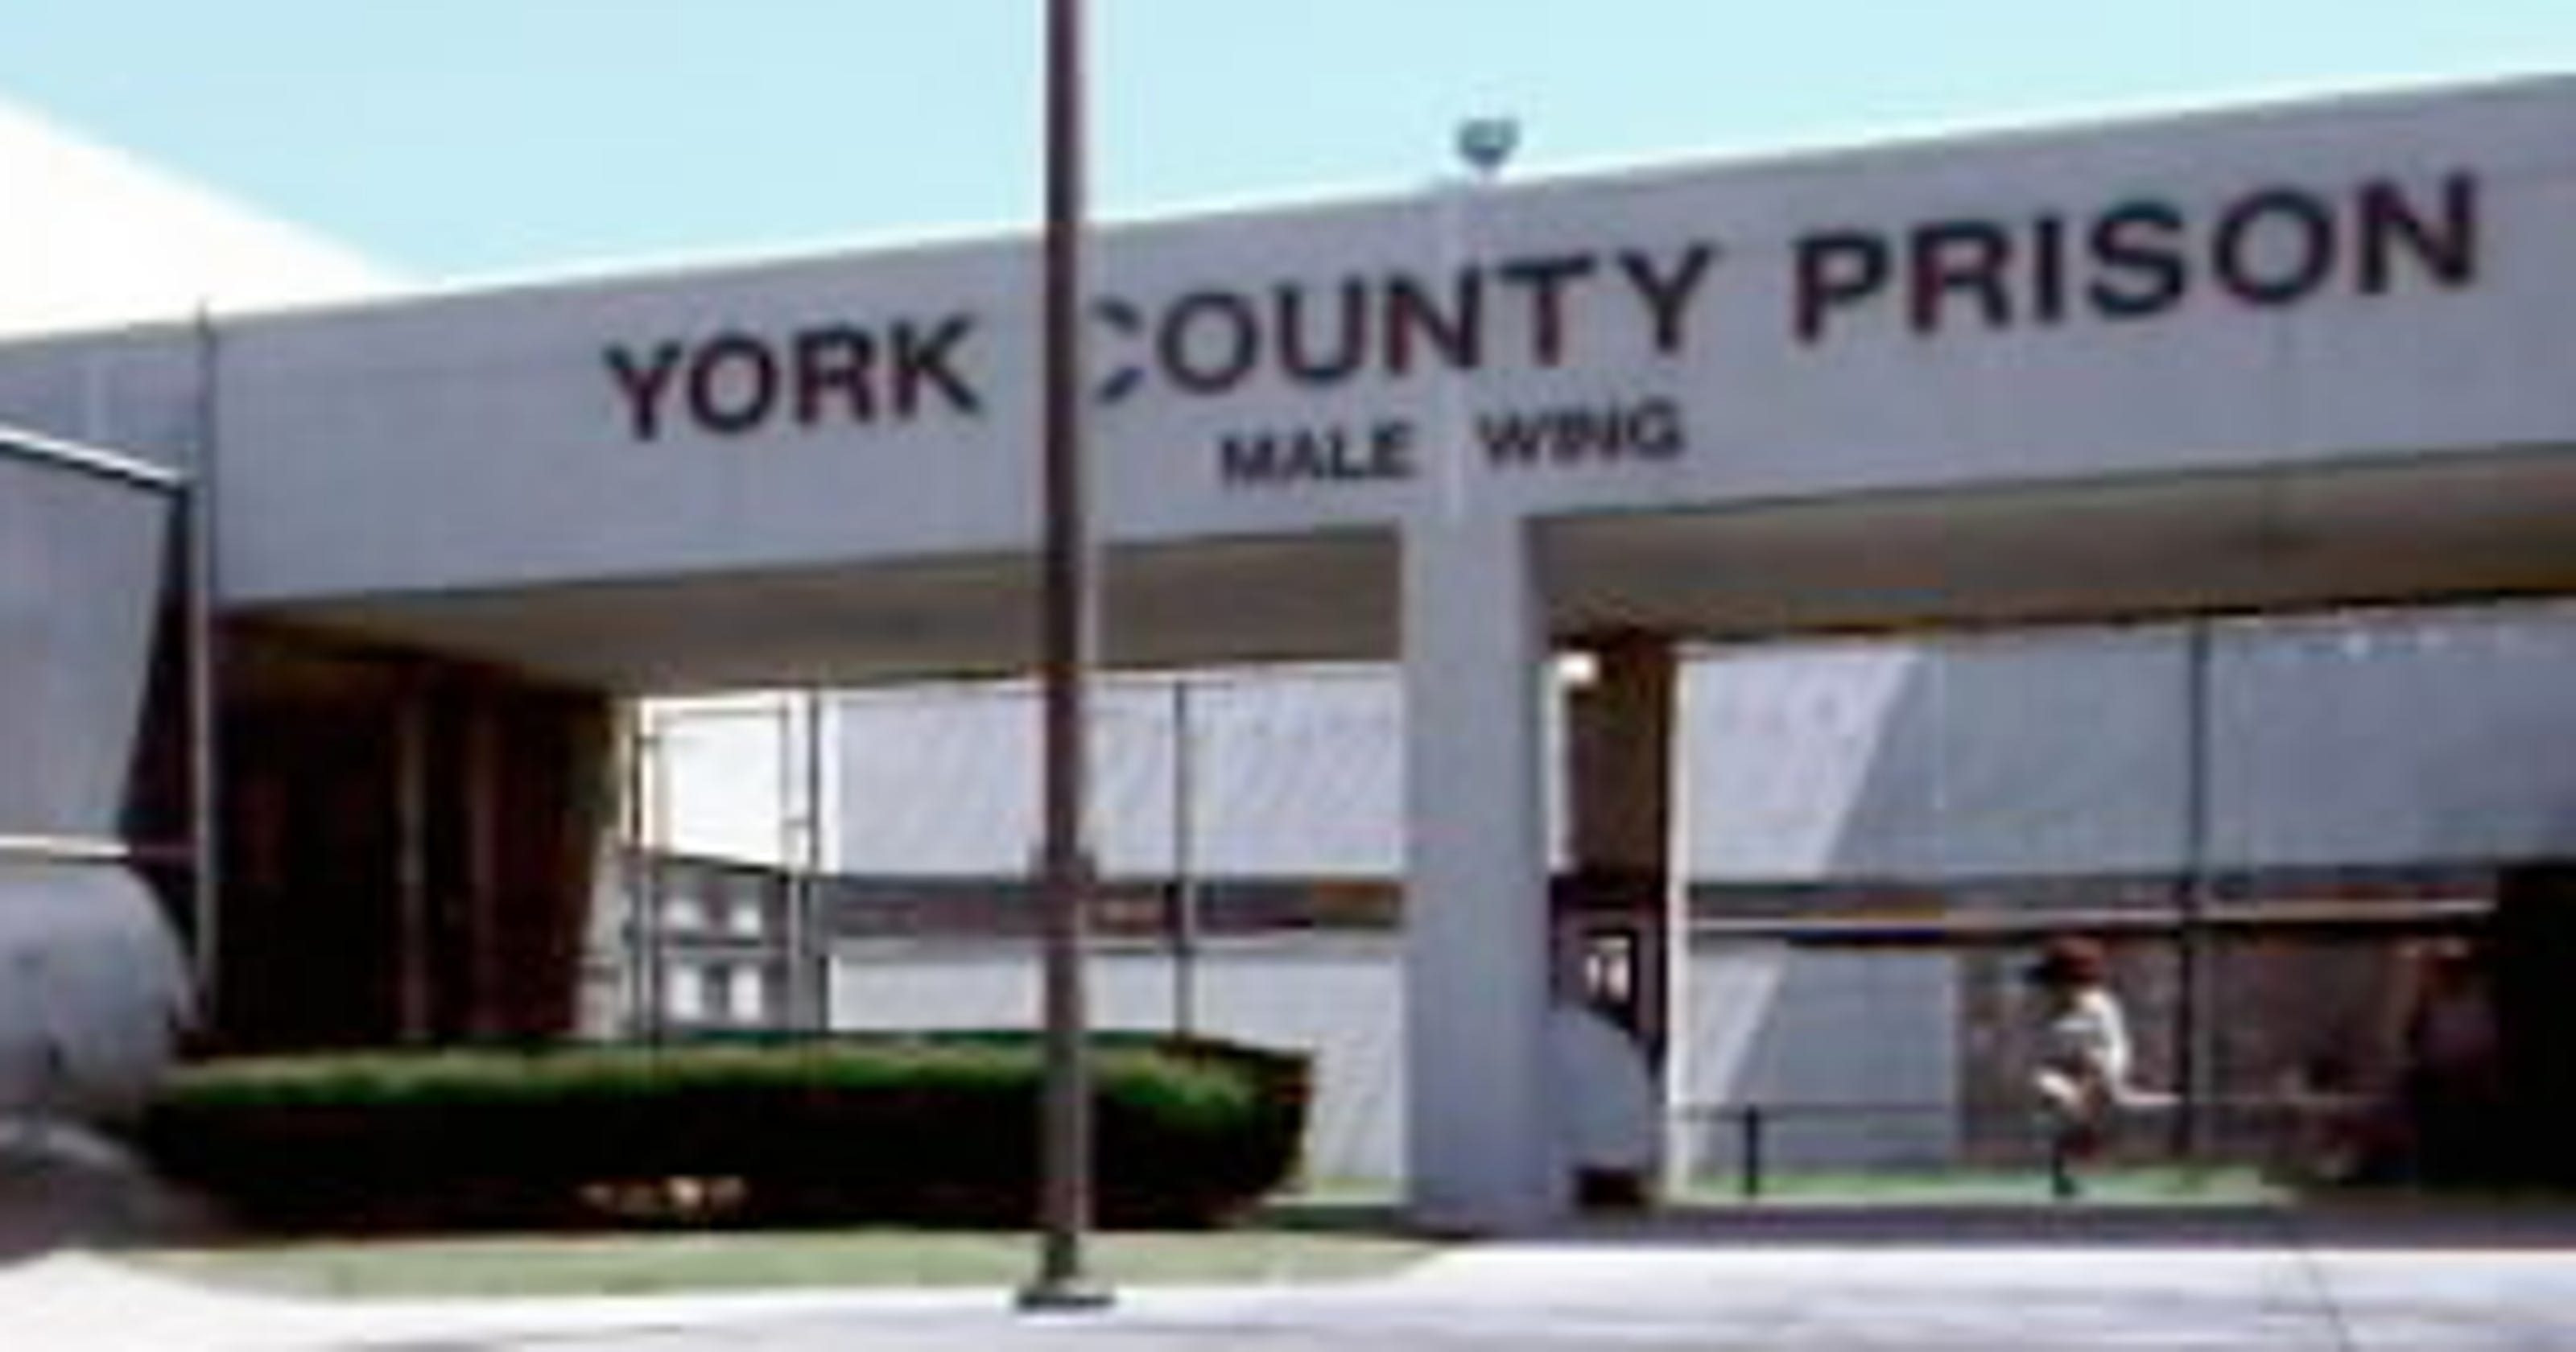 York County, Pa  salaries: What county employees earned in 2017